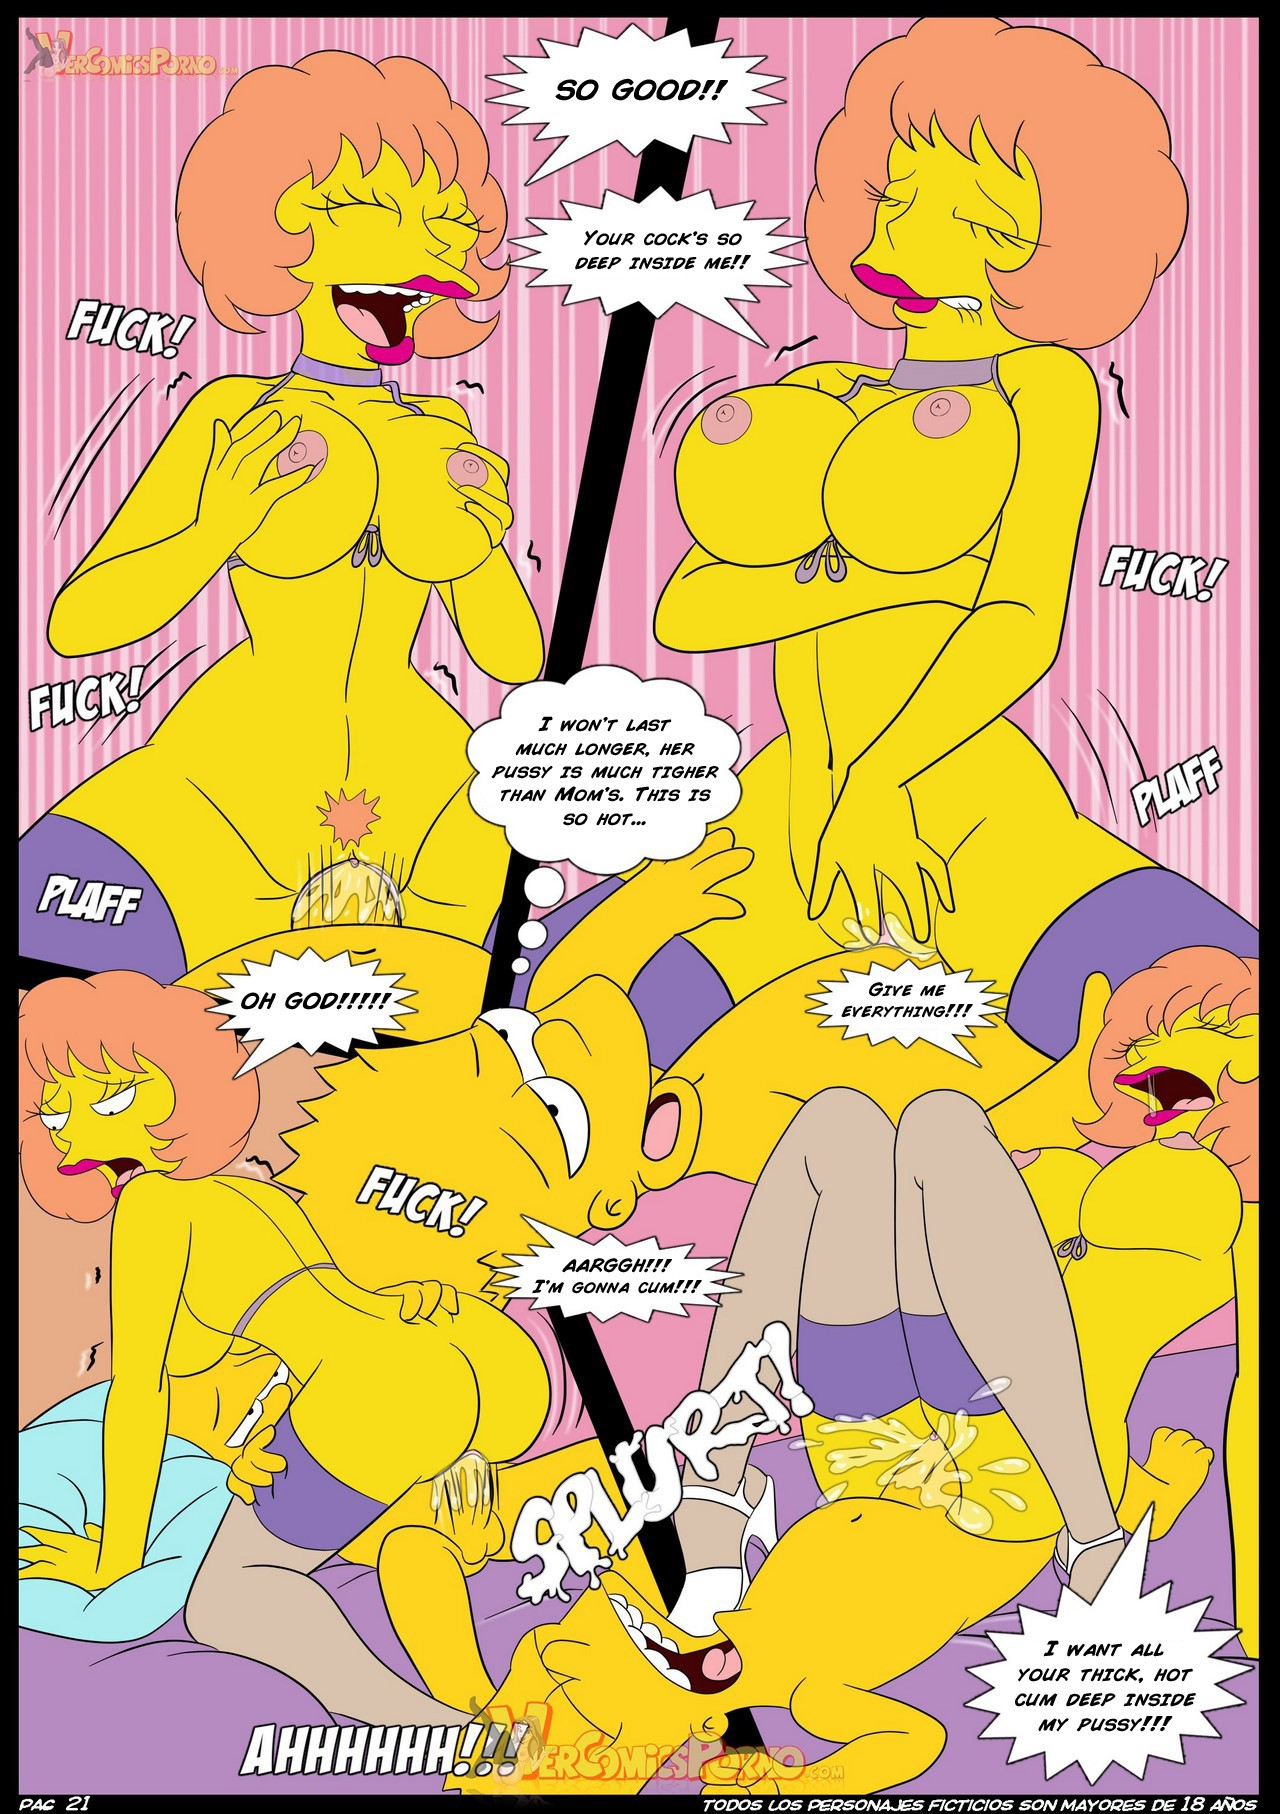 22 20 - The Simpsons. Part 4.